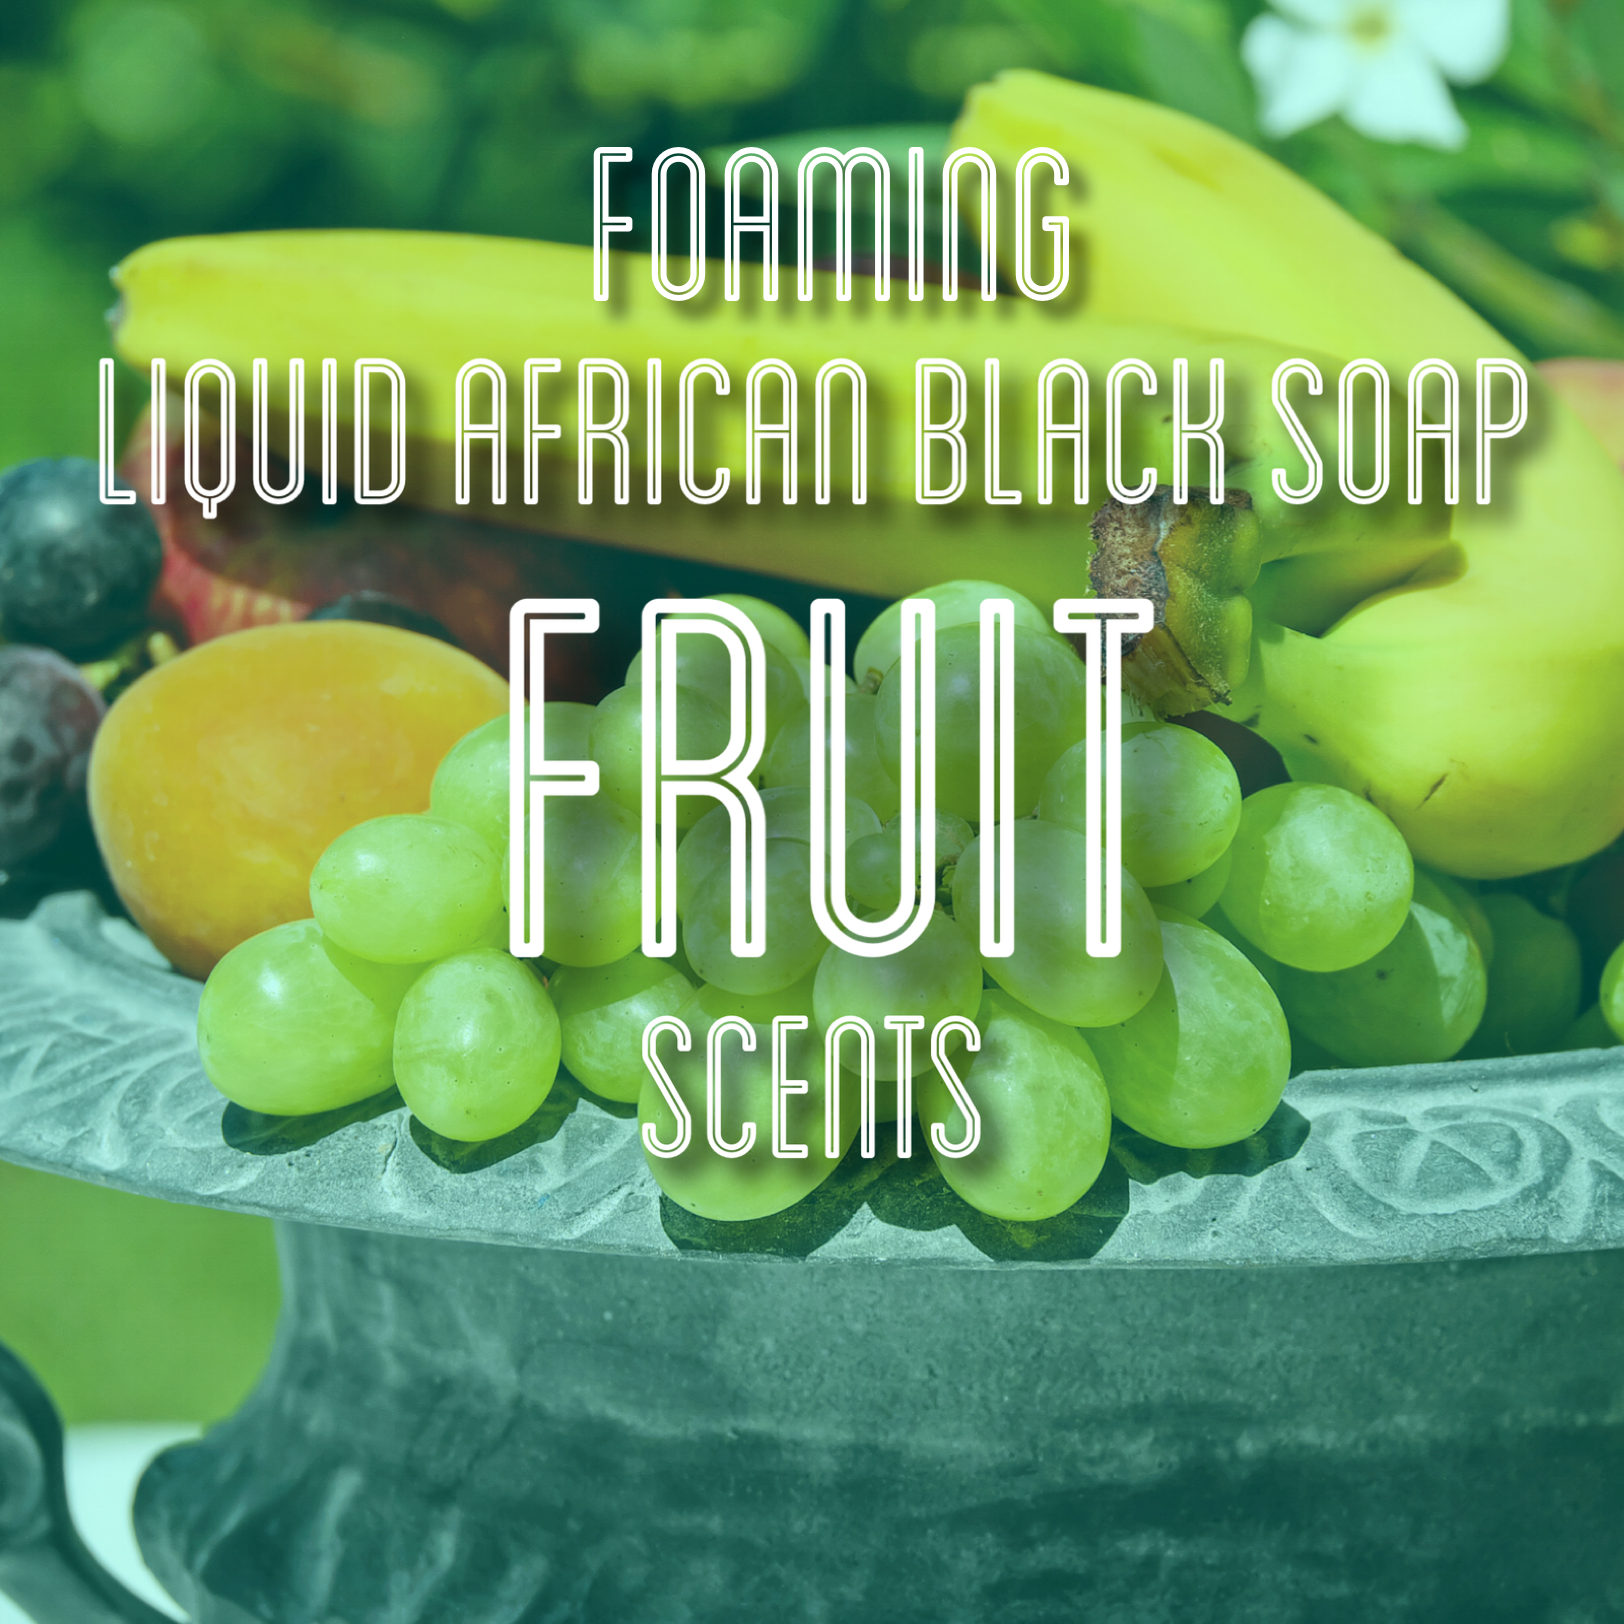 Fra Fra's Naturals | Premium Organic Raw Foaming African Black Soap Face and Body Wash - Fruit Scents